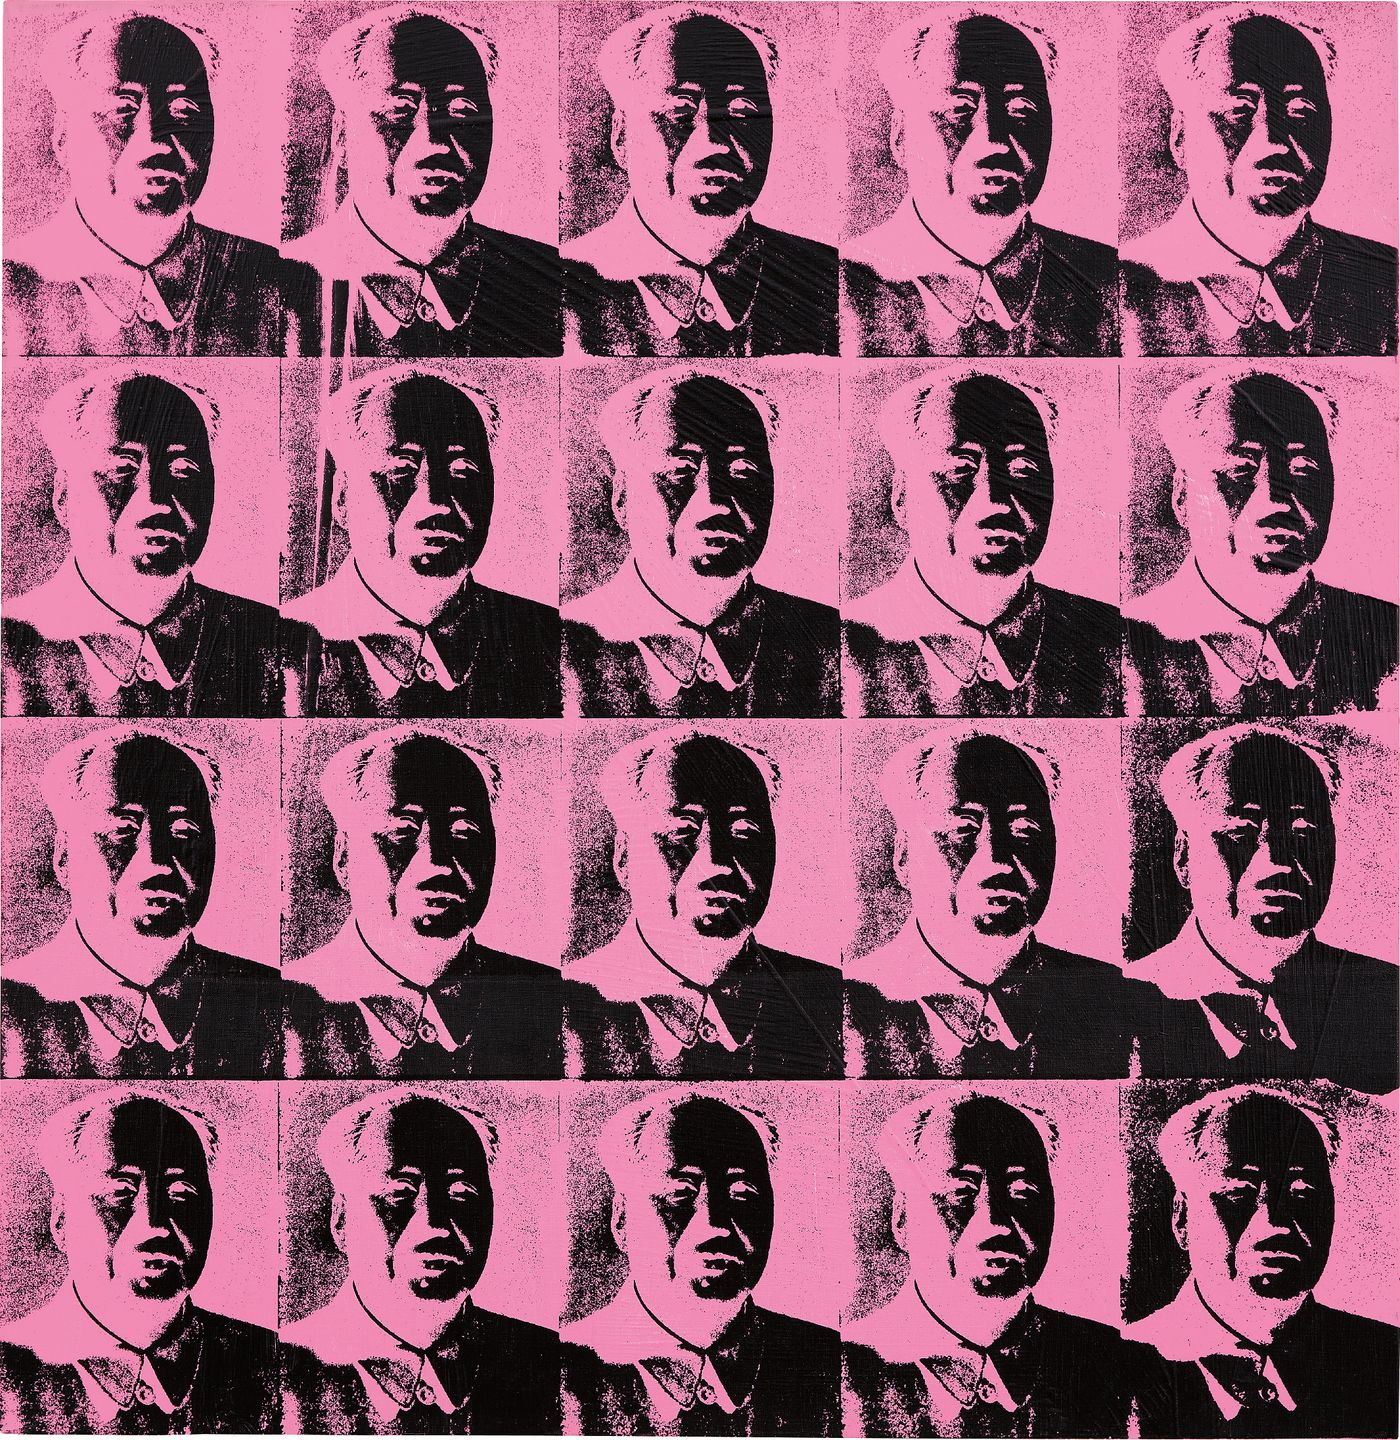 Thought to be among his rarest and most significant works, Warhol'sReversals of Chairman Mao demonstrate ashrewd recalculation of one of the world's mostubiquitous portraits.